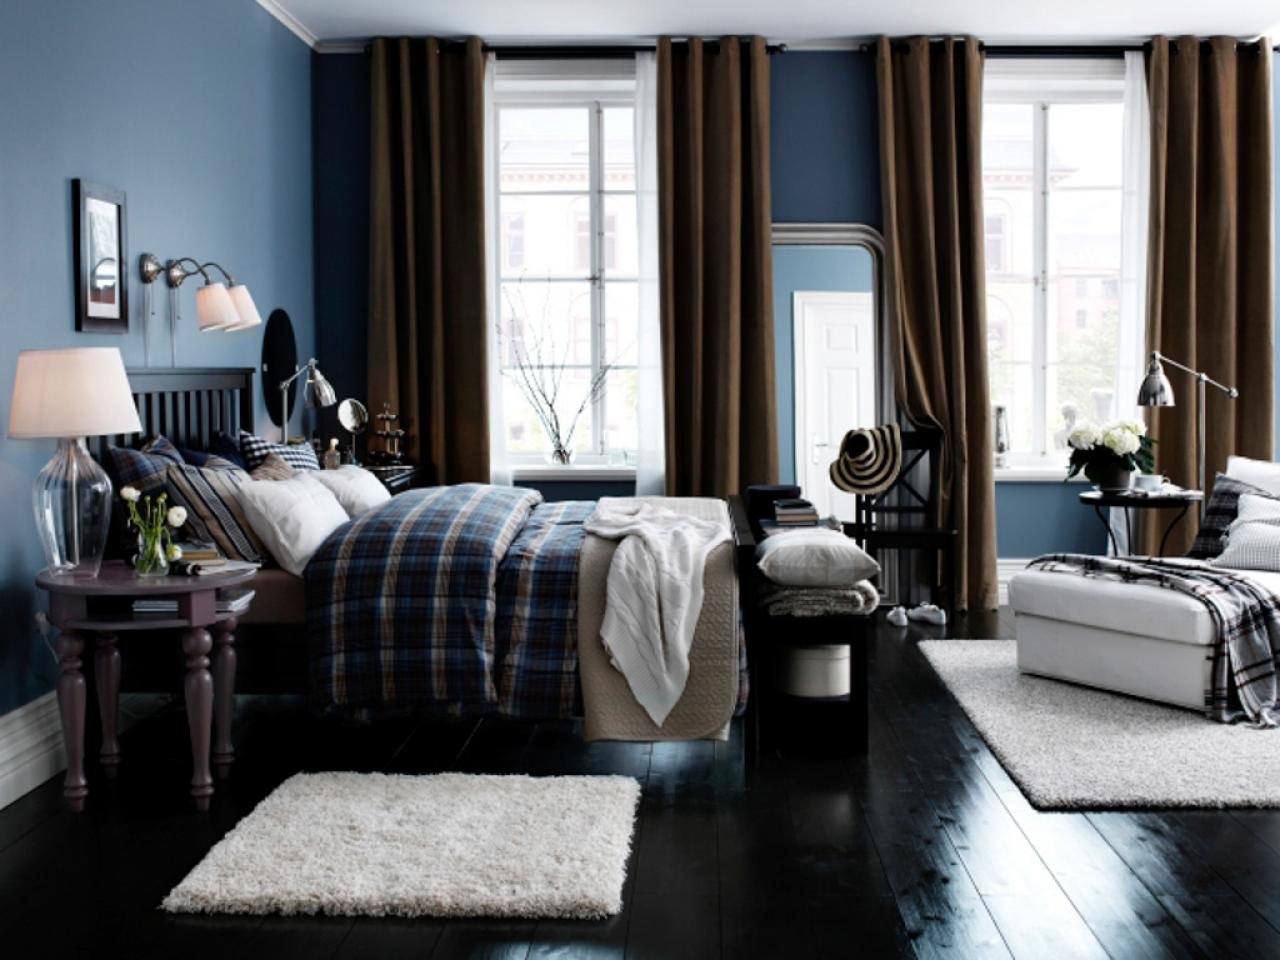 Painting Living Room Walls Two Colors How To Paint A Room Two Colors Room Painting Ideas With Two